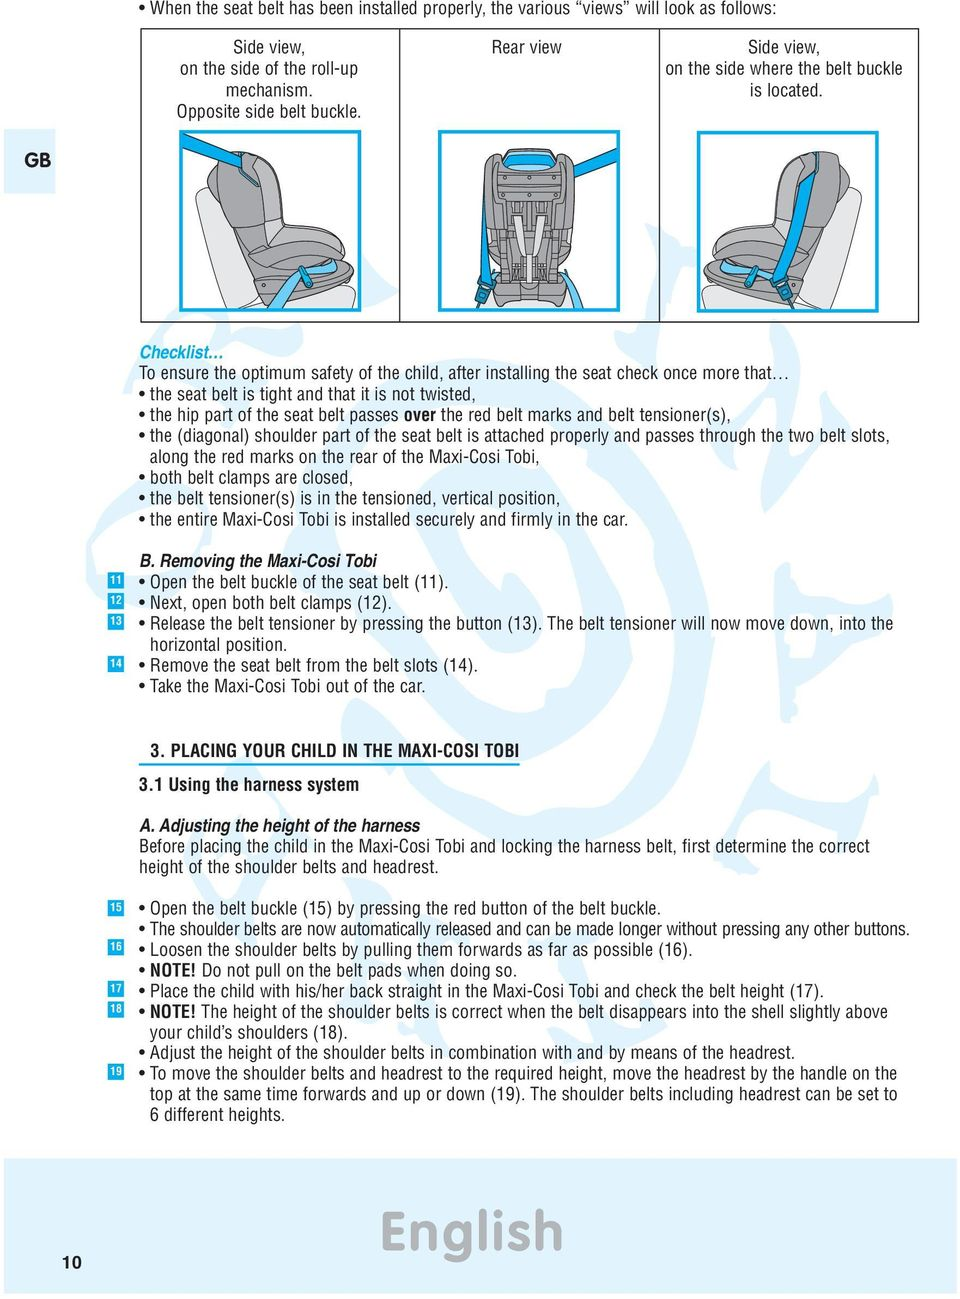 GB Checklist To ensure the optimum safety of the child, after installing the seat check once more that the seat belt is tight and that it is not twisted, the hip part of the seat belt passes over the